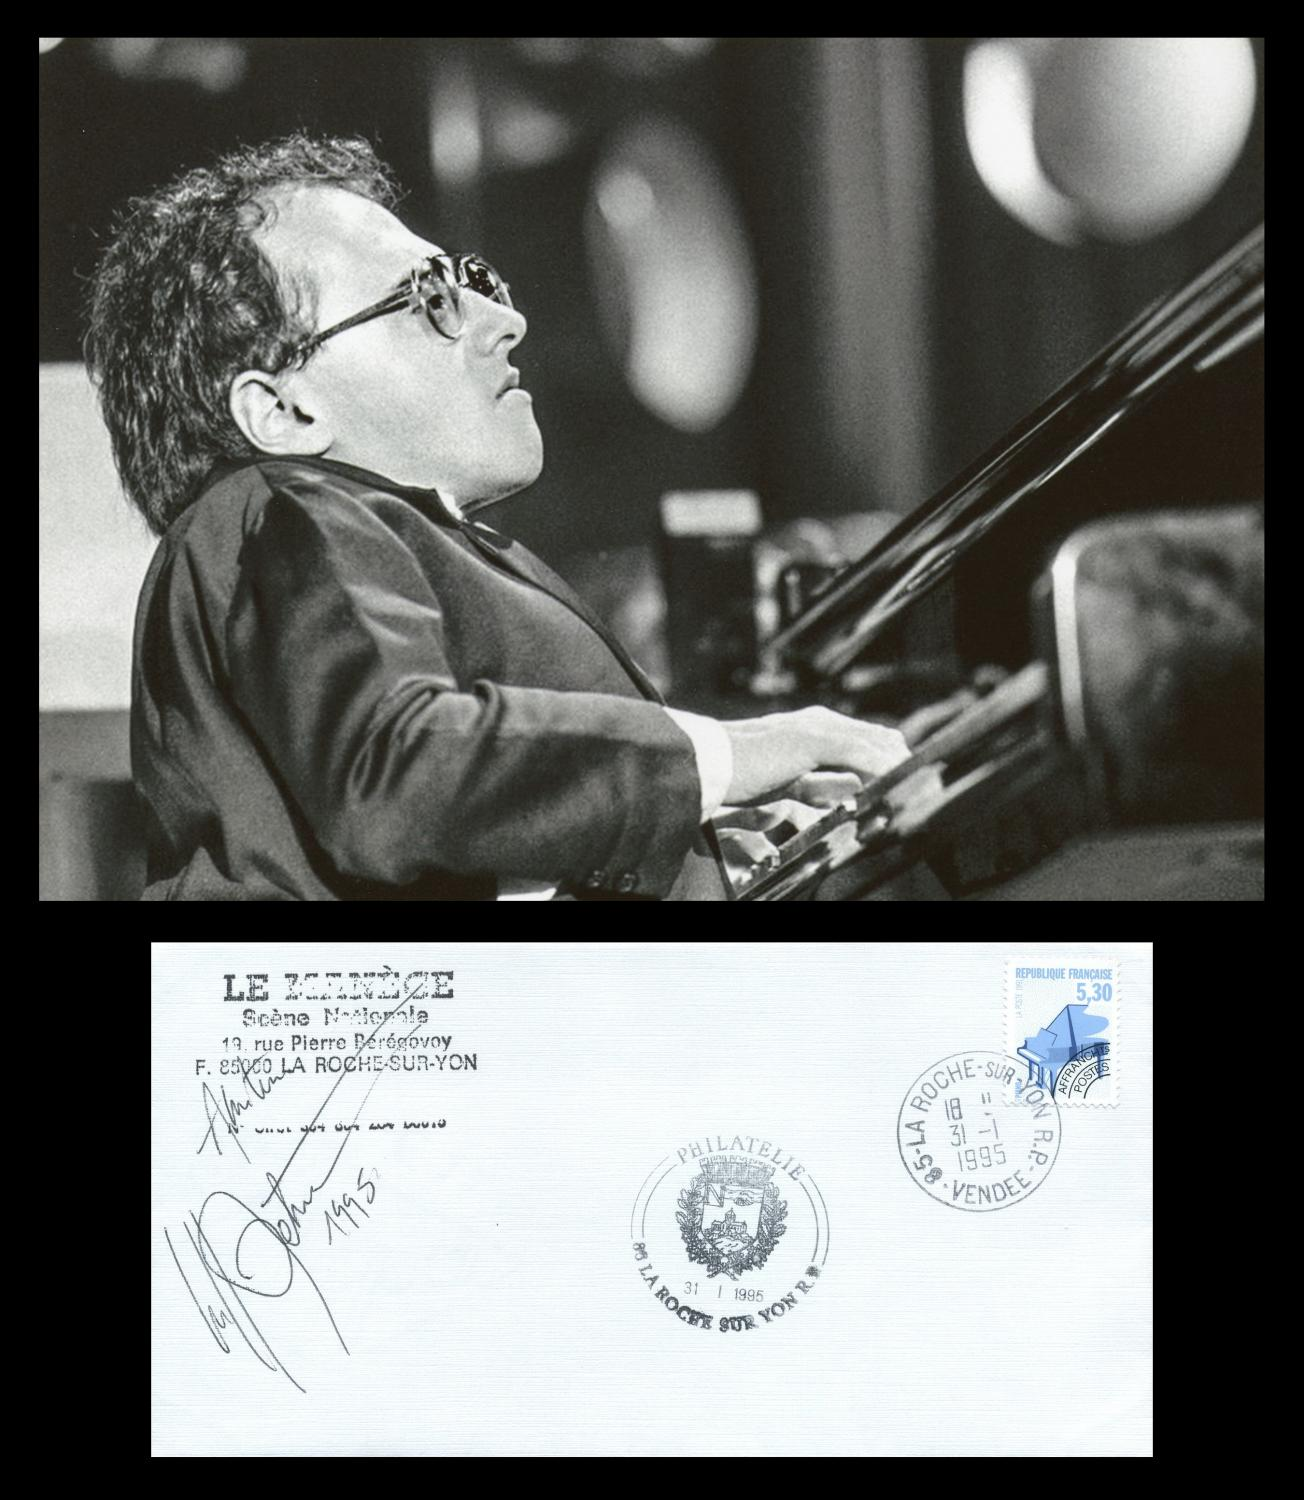 Michel_Petrucciani_19621999__Rare_signed_FDC__Photo_Michel_Petrucciani_19621999__French_jazz_pianist_Très_bon